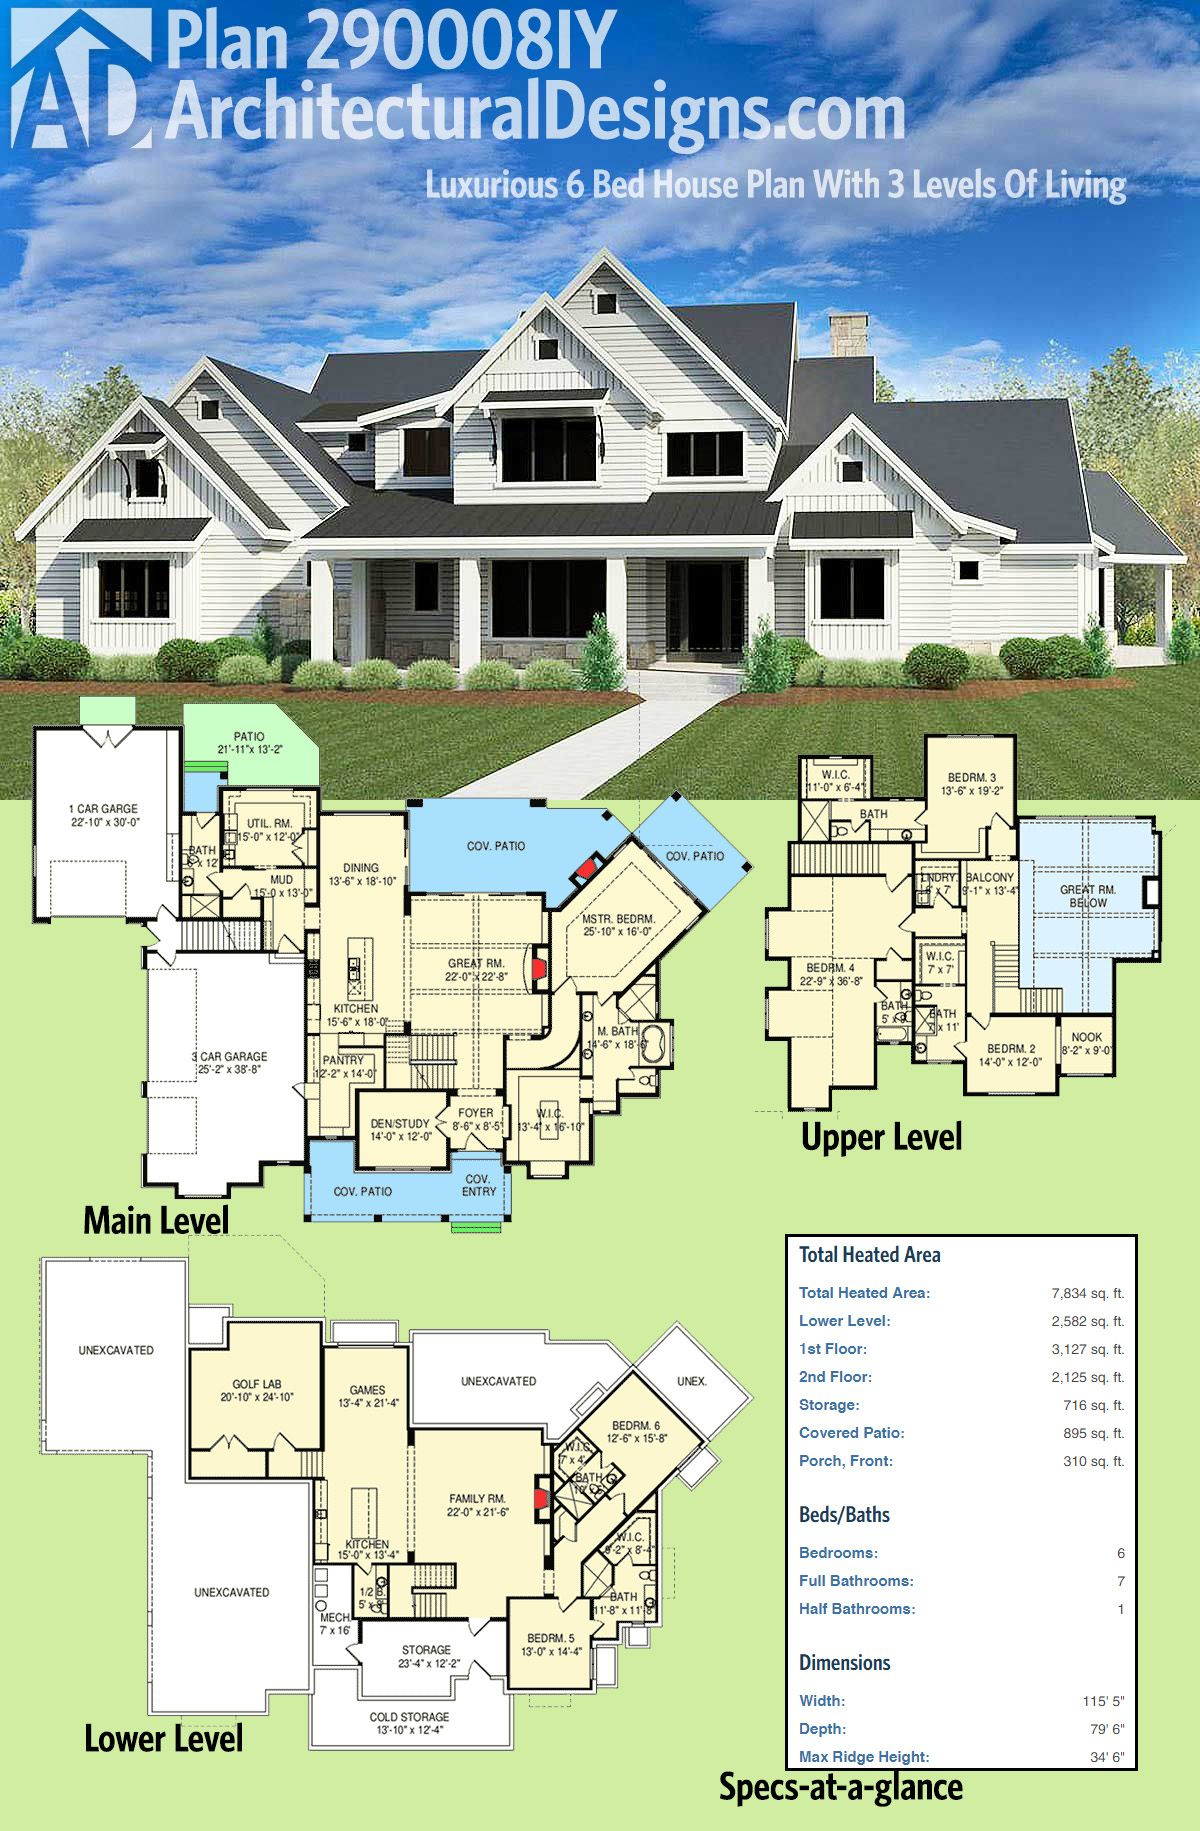 Architectural designs craftsman house plan 290008iy gives you 6 bedrooms spread across 3 levels of living ready when you are where do you want to build